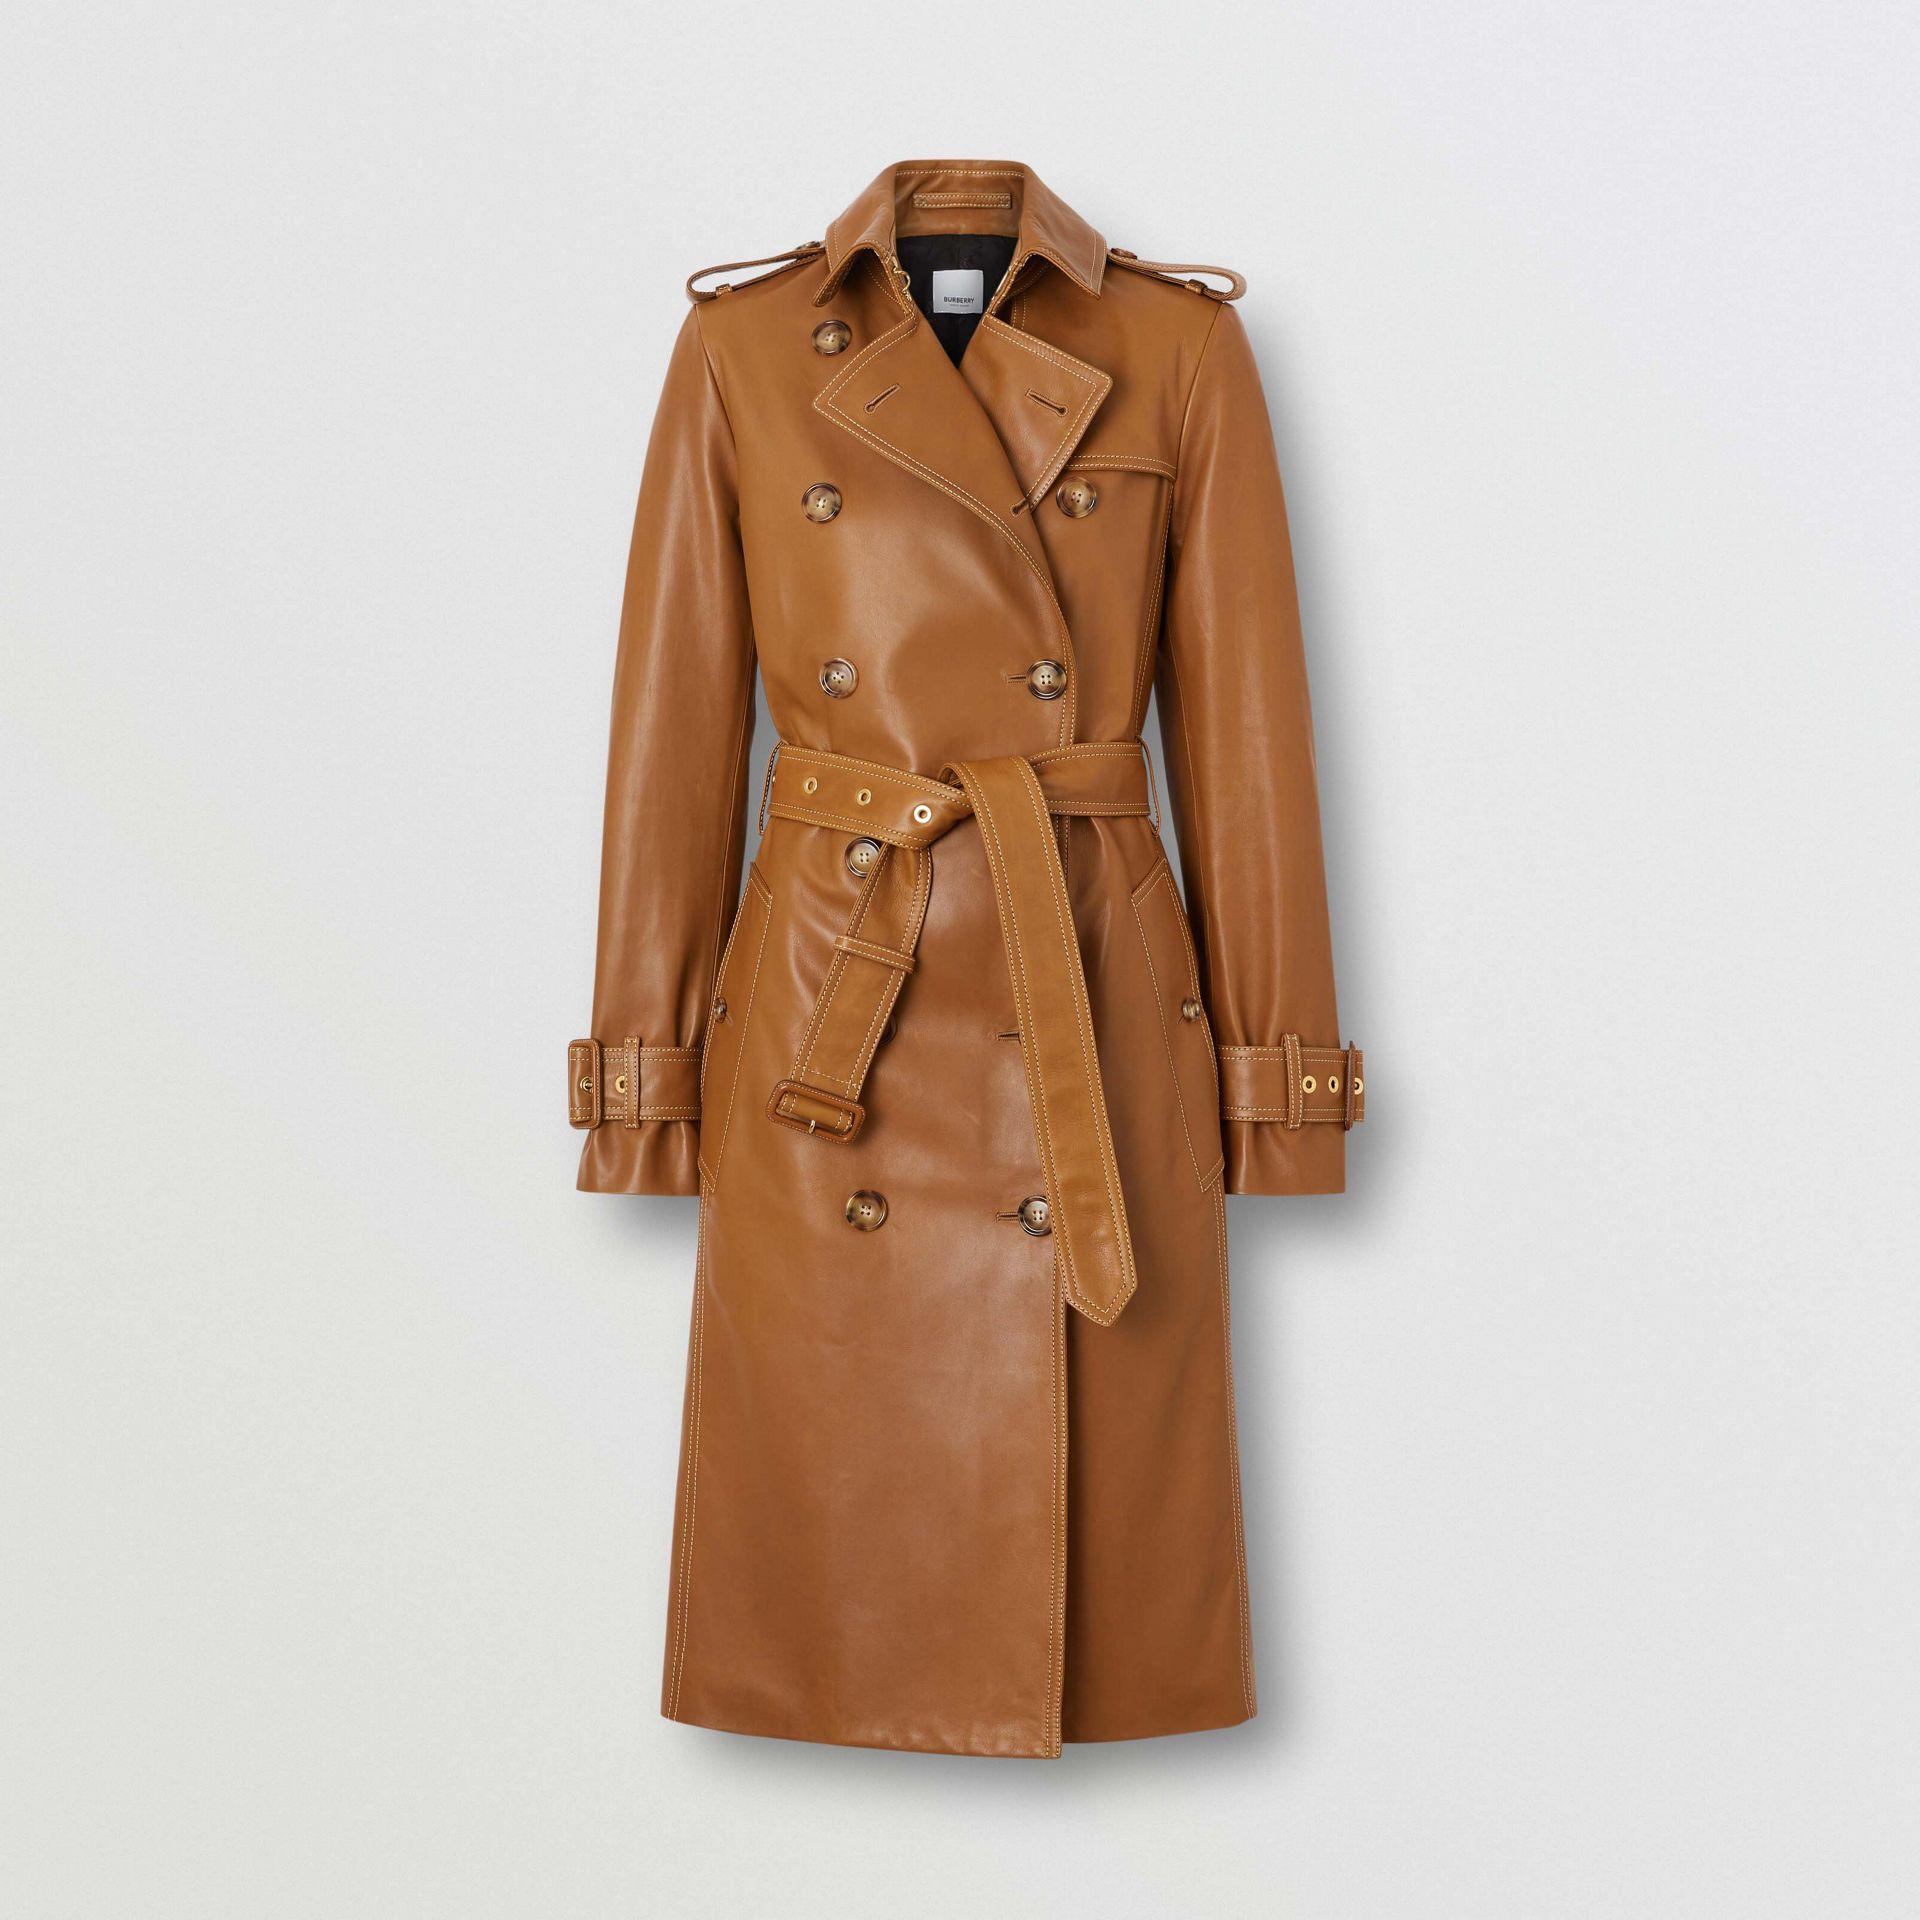 Topstitch Detail Lambskin Trench Coat in Maple - Women | Burberry United Kingdom - gallery image 3